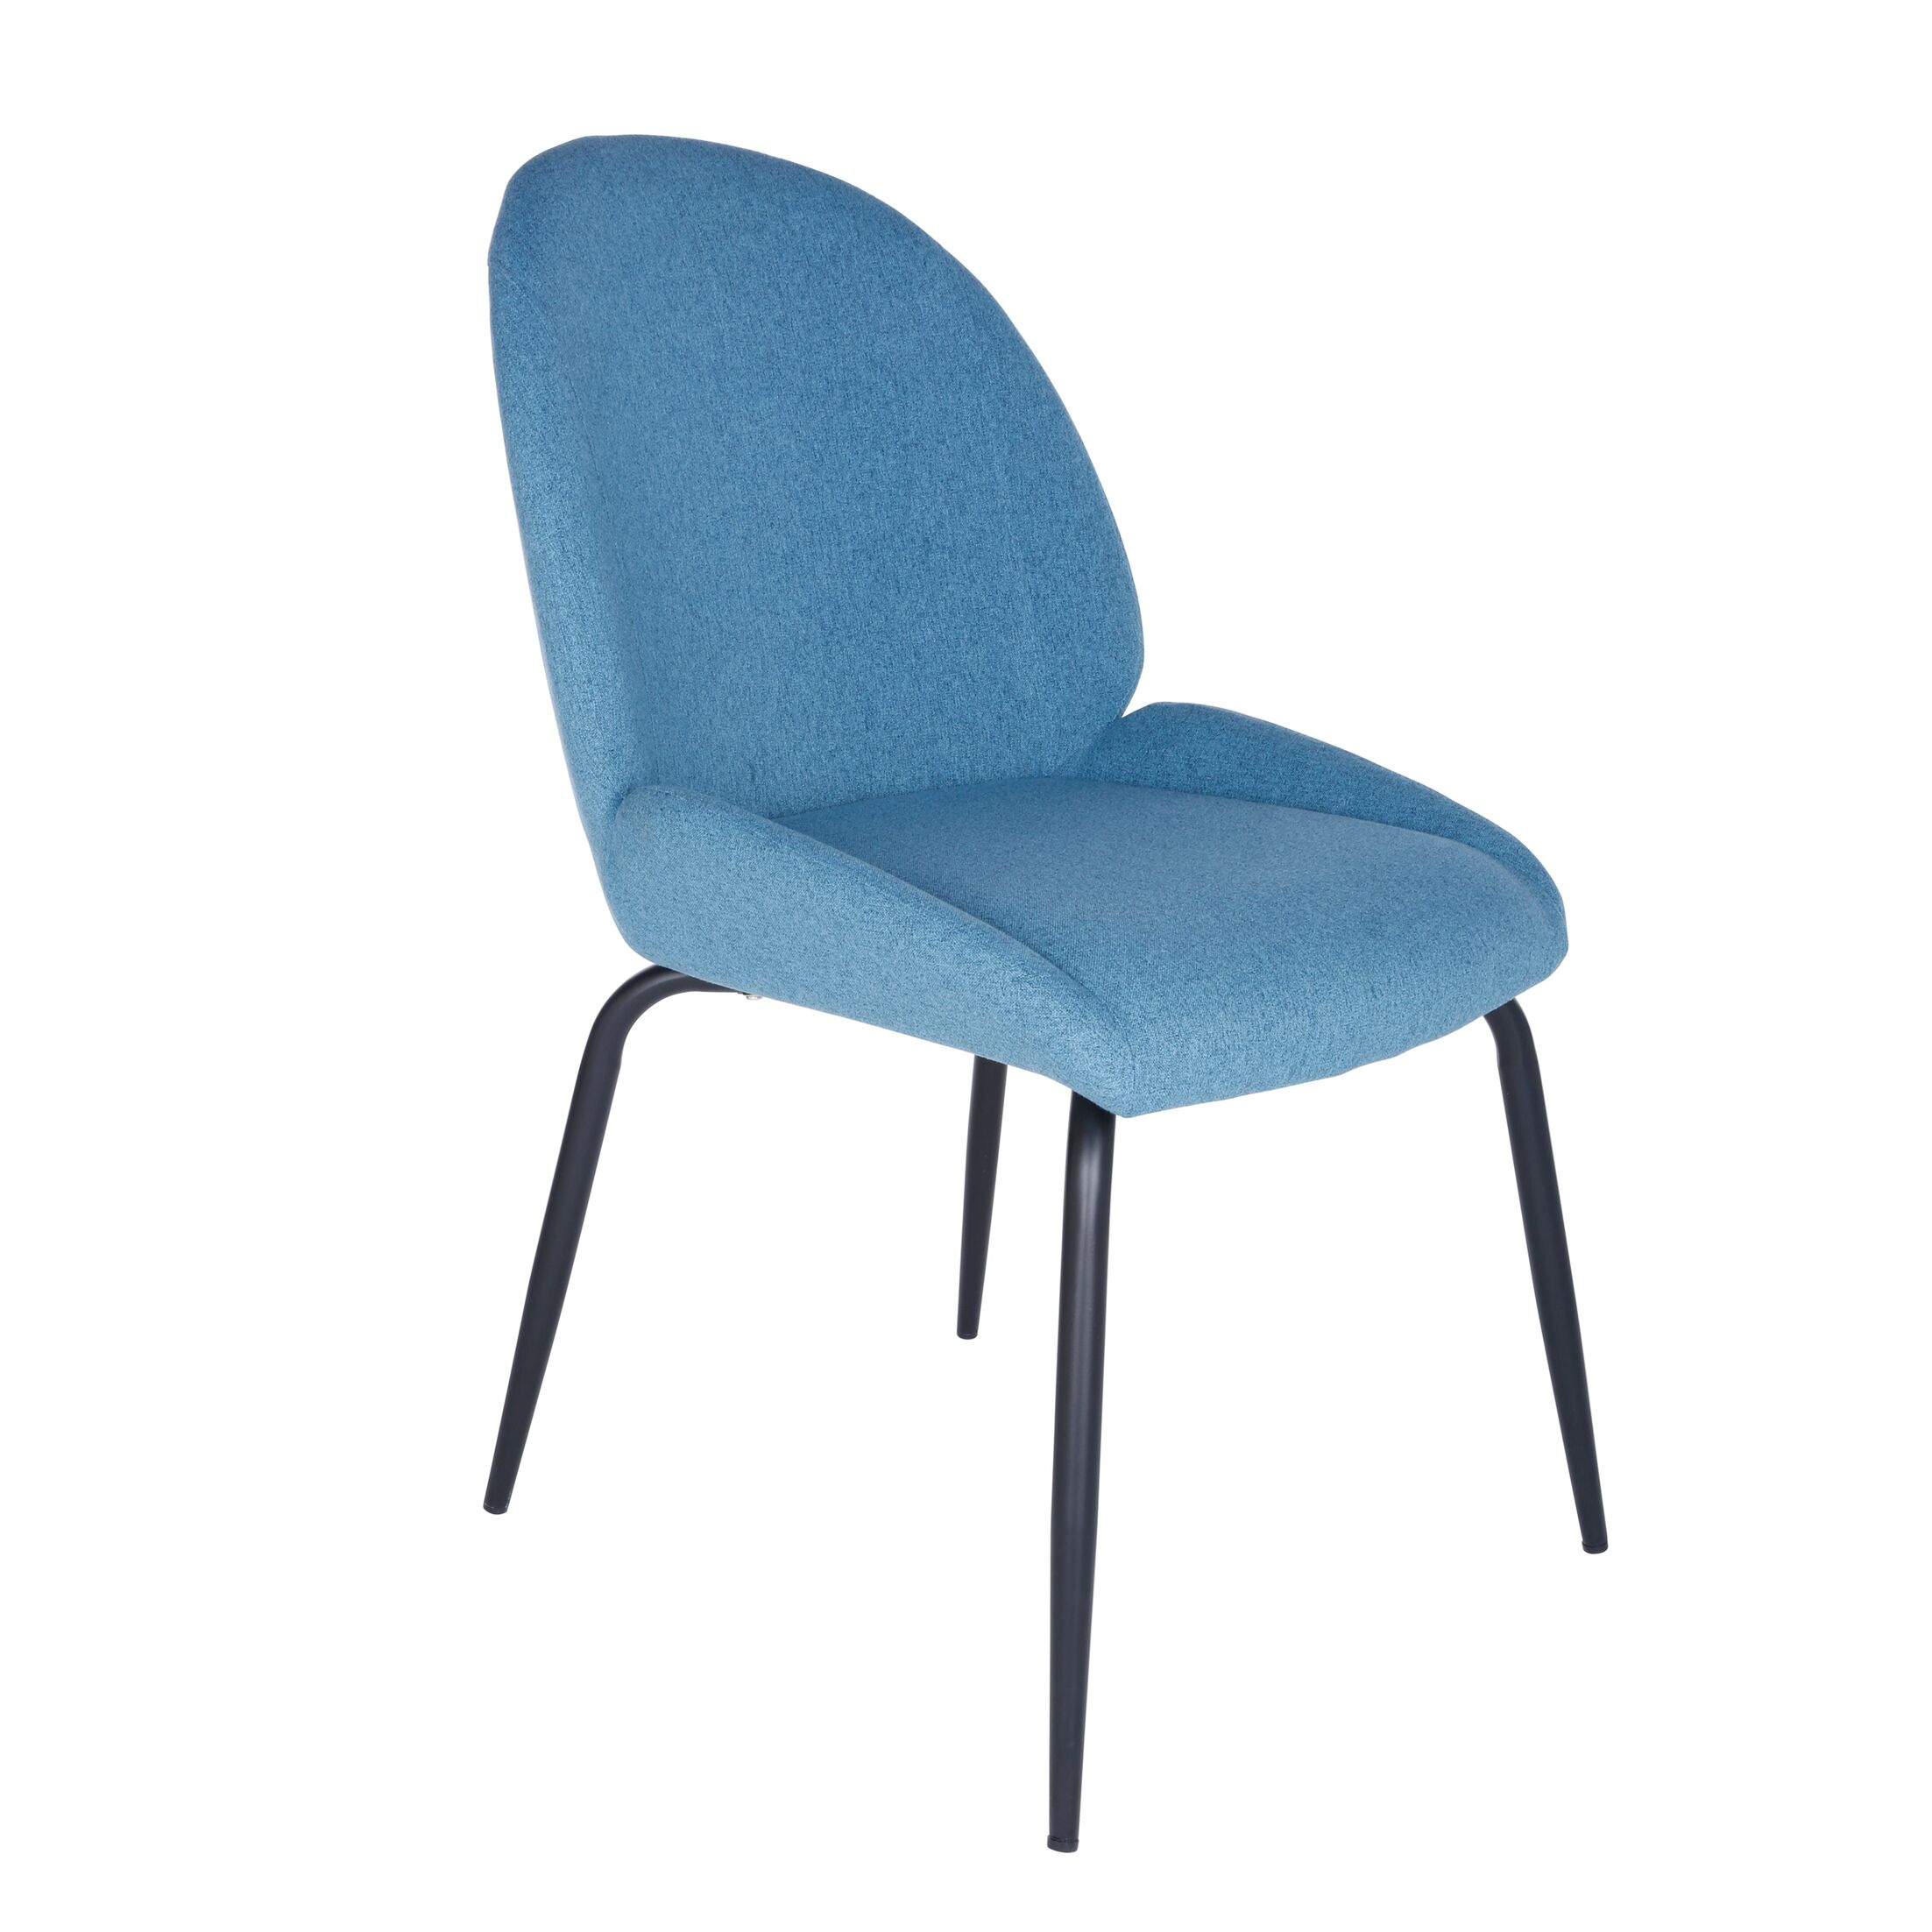 Oday Upholstered Dining Chair with Steel Leg Upholstery Color: Blue